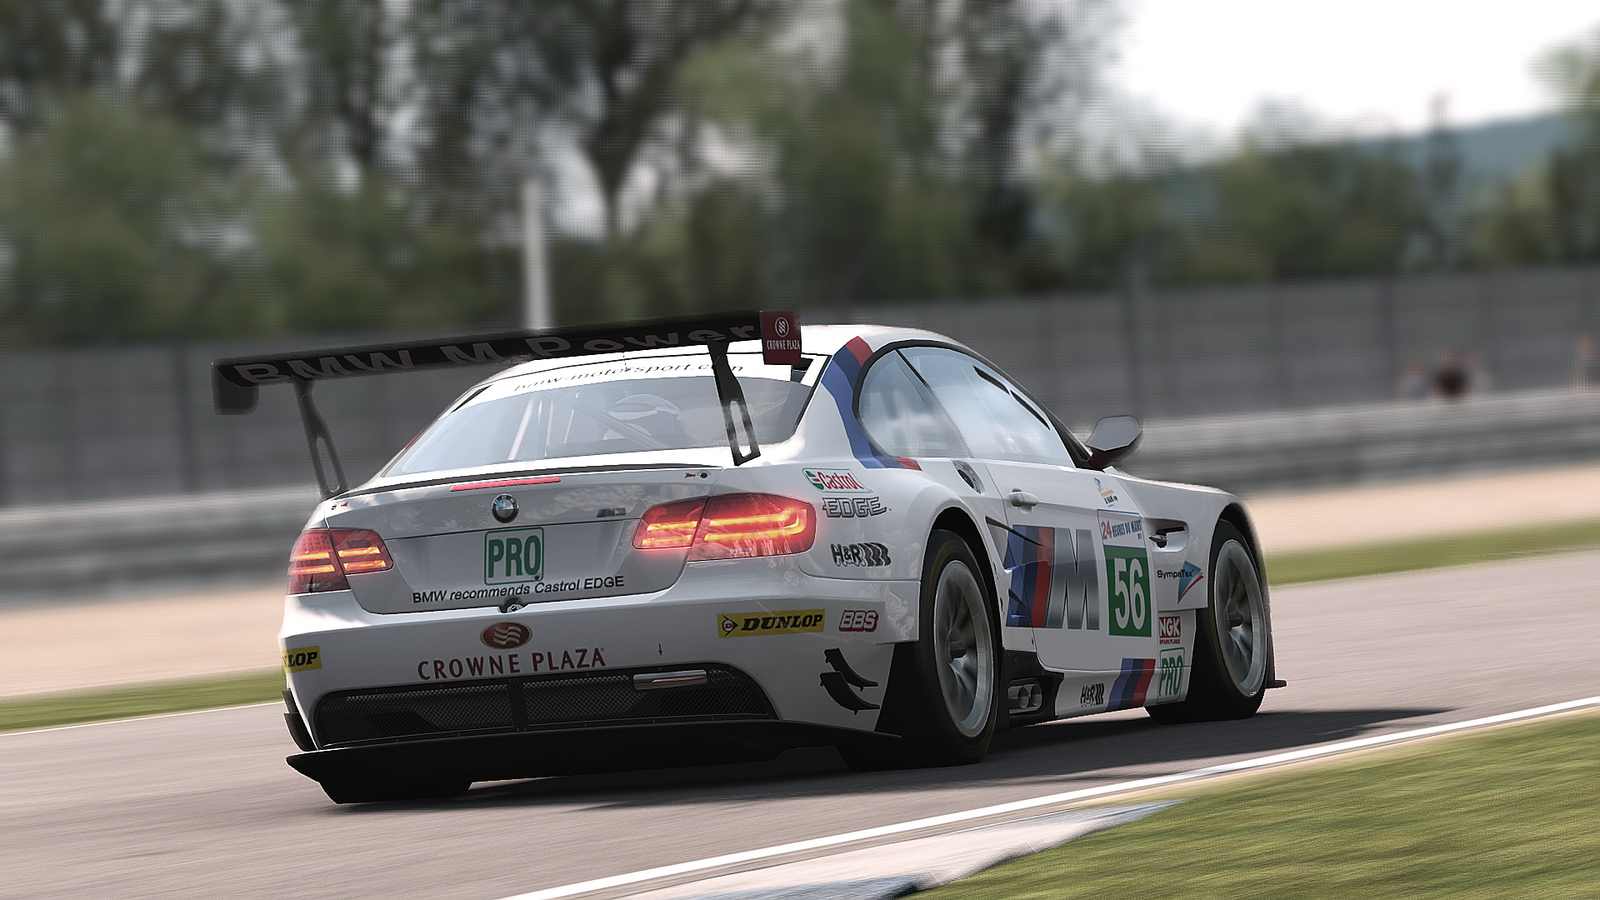 Project CARS a Gran Turismo 6 ellen: BMW M3 GT - Brands Hatch esőben